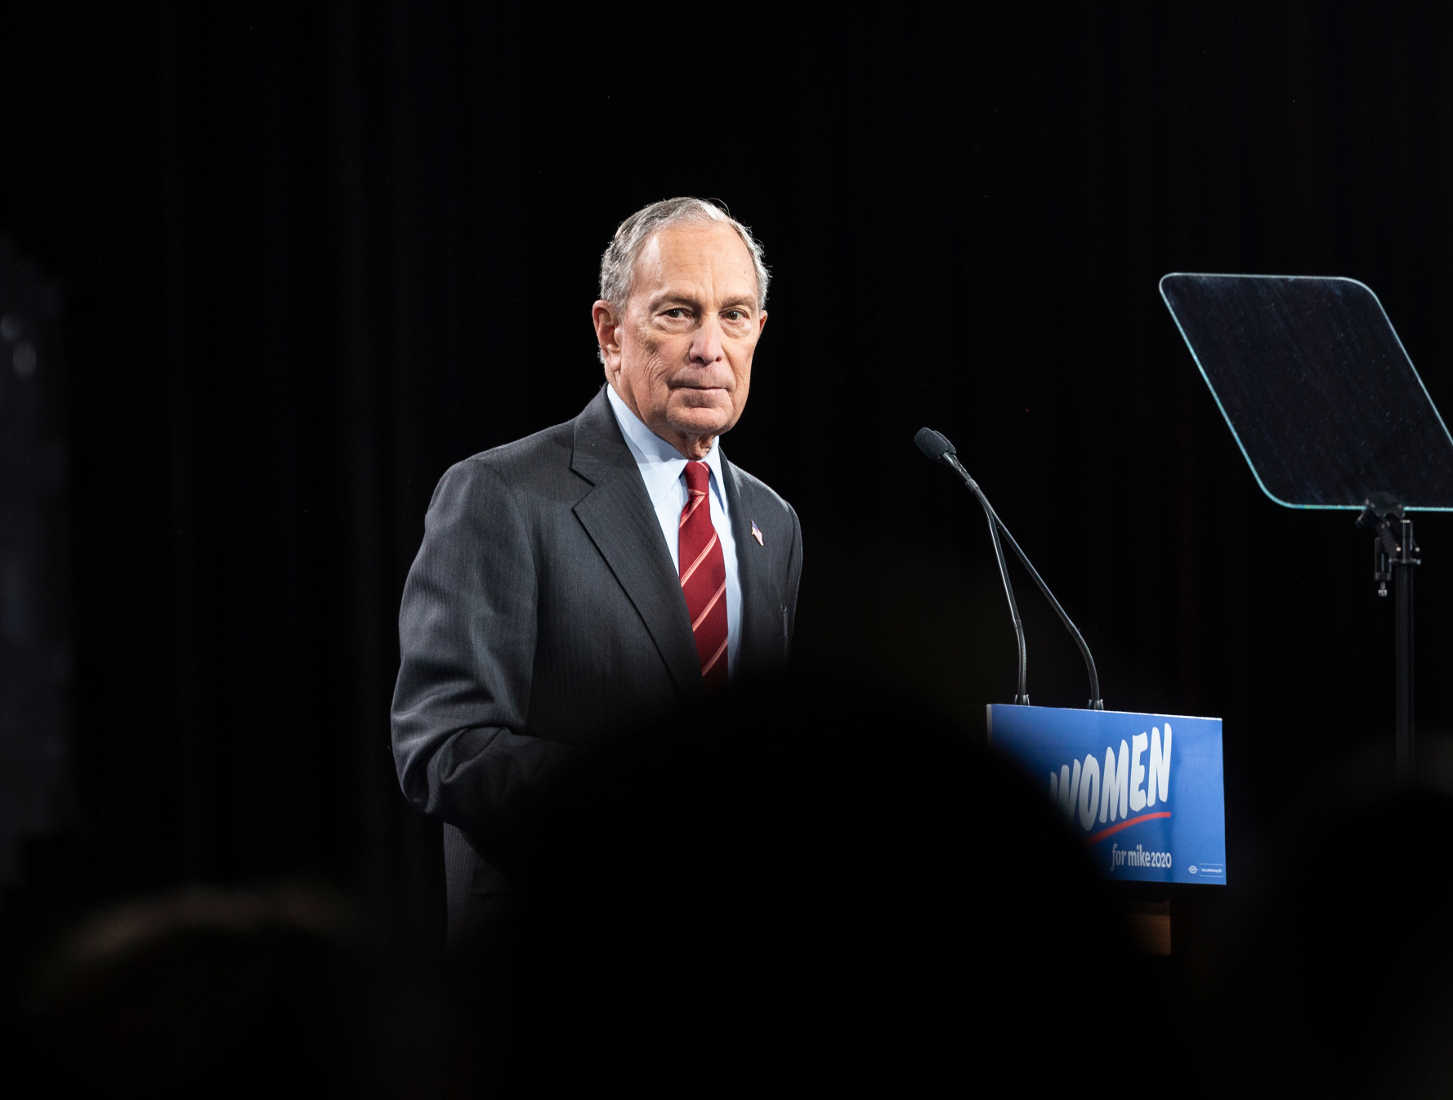 Bloomberg-Backed Gun Control Group Aims to Register 100,000 Young Voters